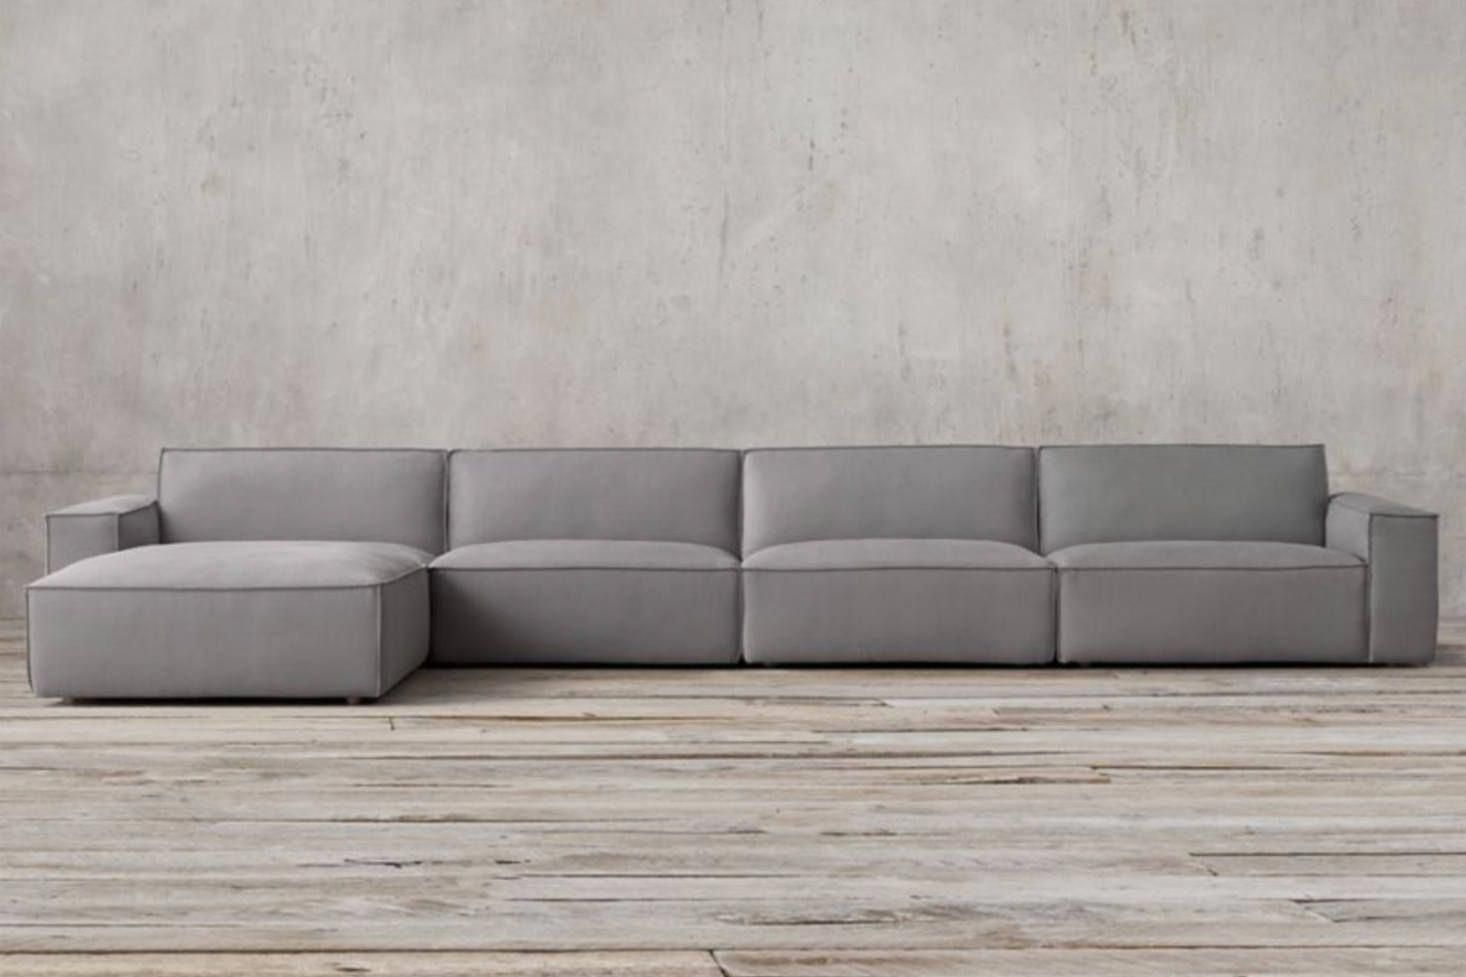 Even restoration hardware jumped on the clunky modular sofa bandwagon with their como modular sofa sectional its possible via its components to fully